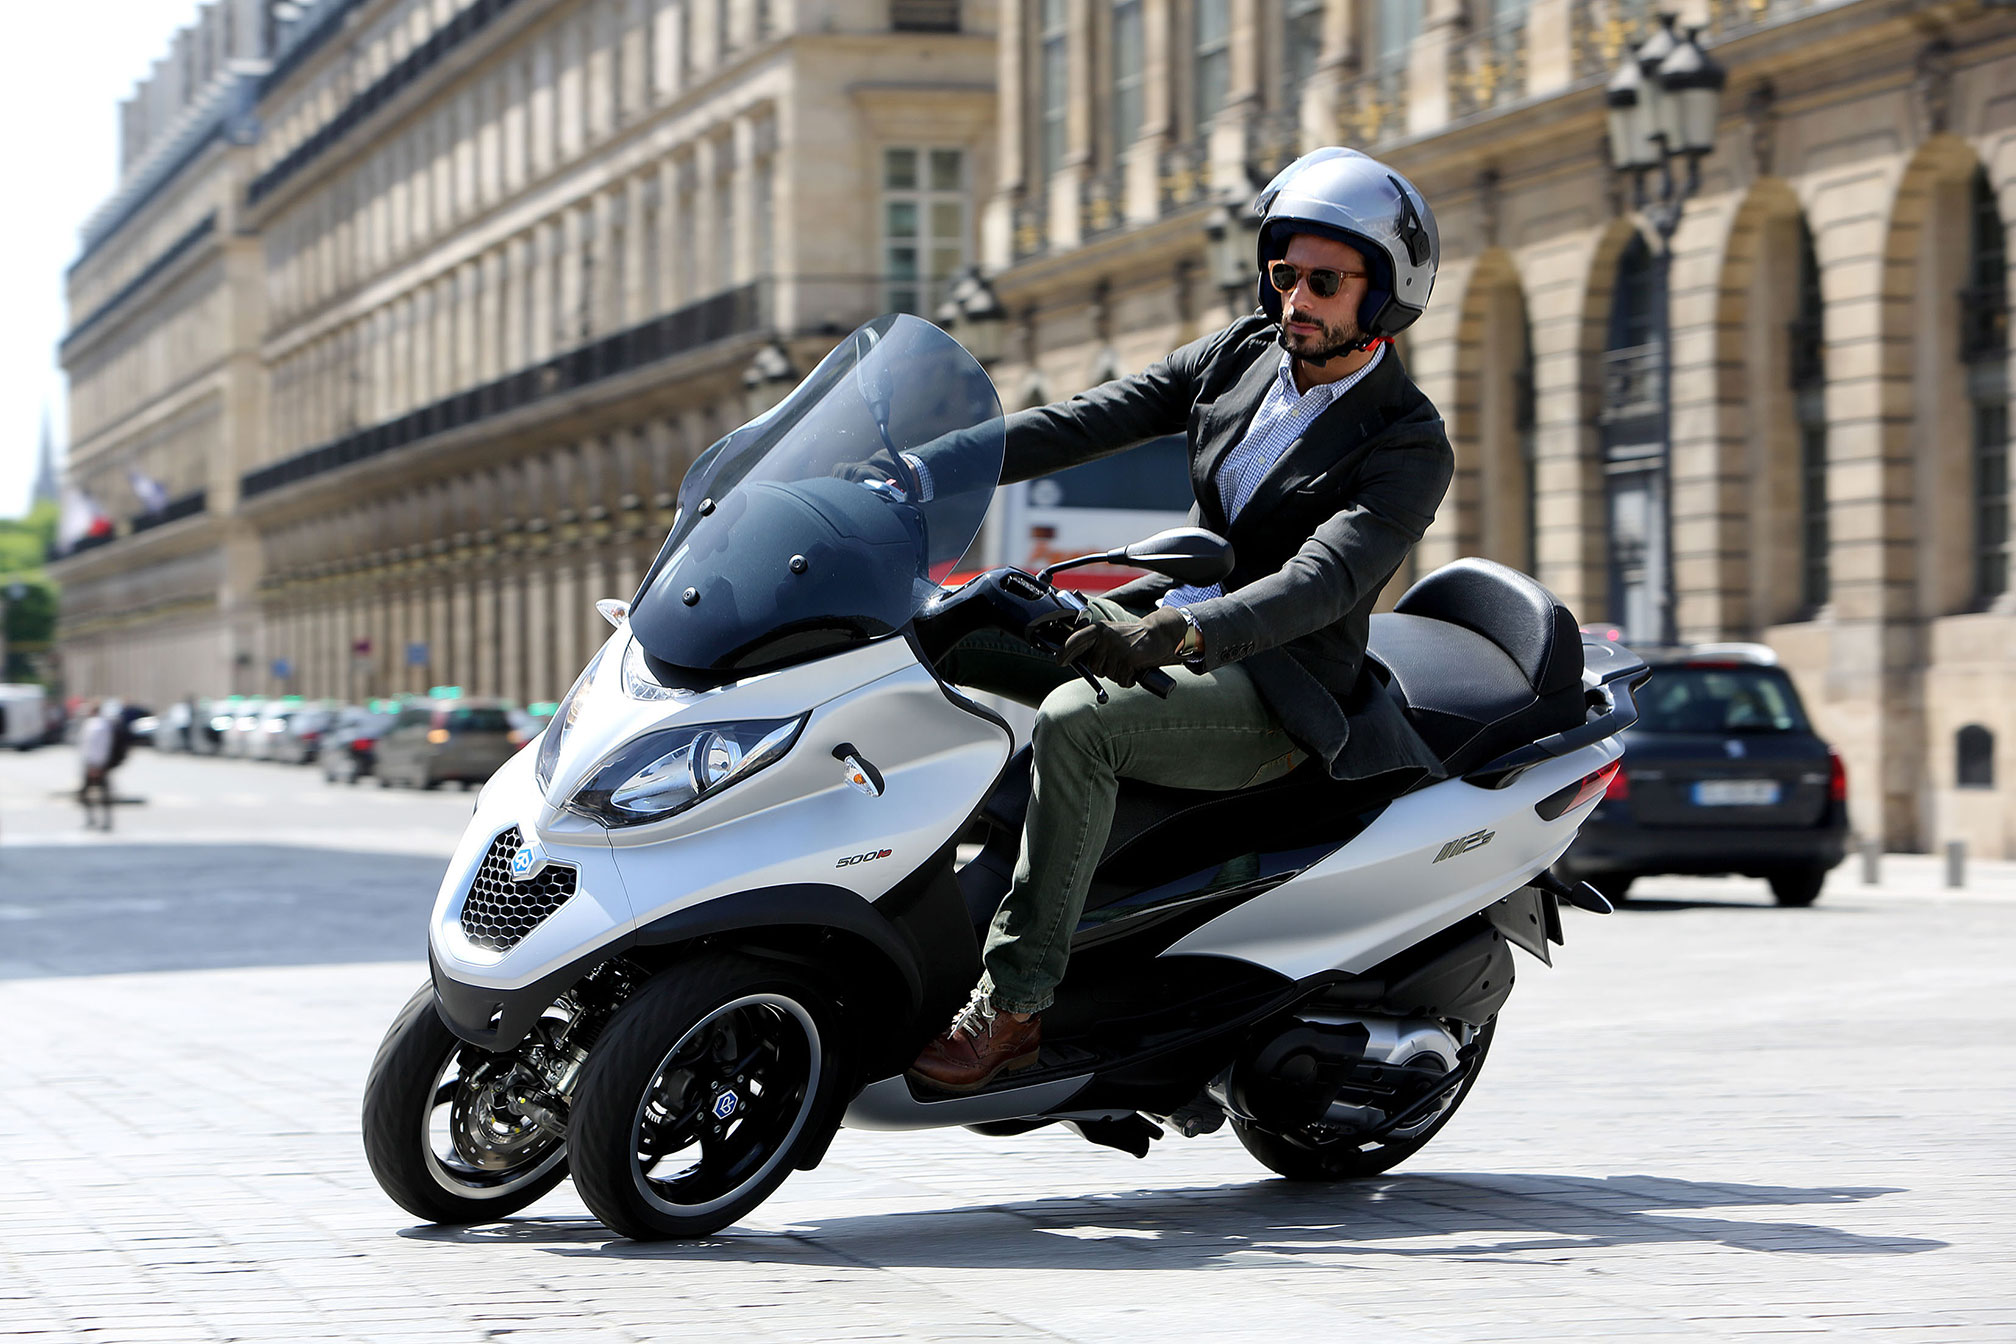 https://www.totalmotorcycle.com/wp-content/uploads/2016/12/2016-Piaggio-MP3-500-Sport-ABS1.jpg?d=1&i=1